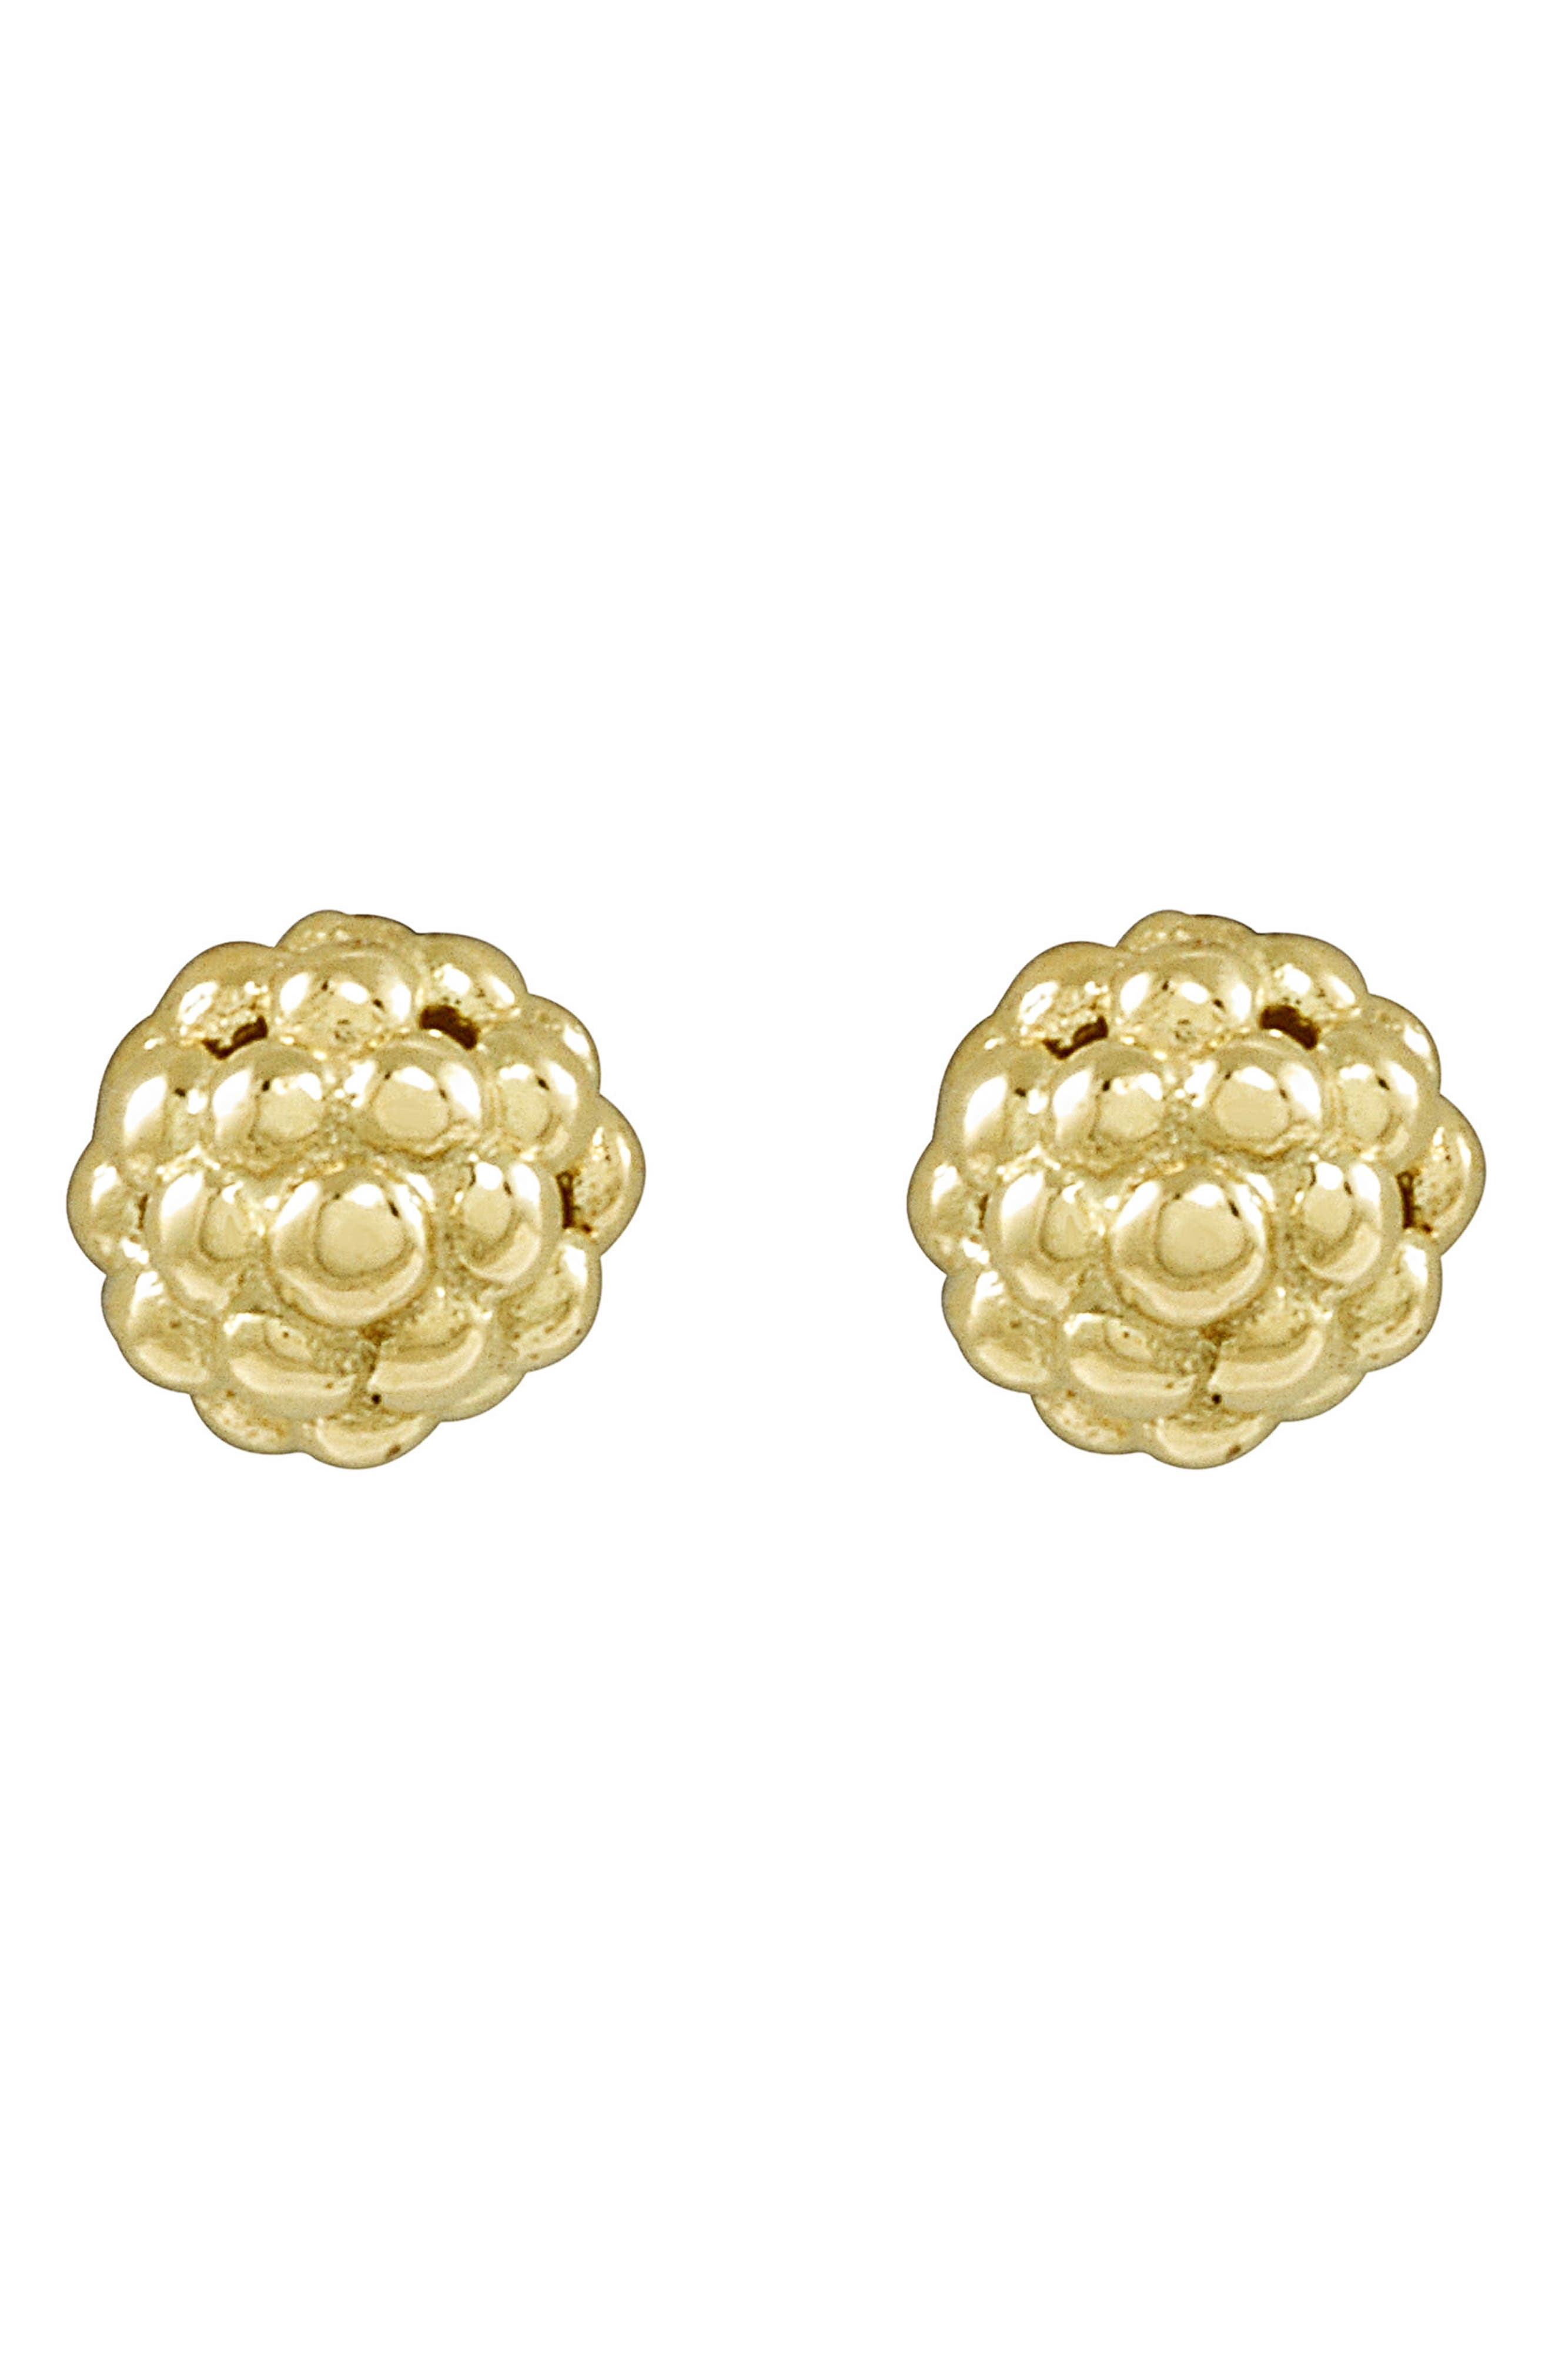 'Caviar Icon' Stud Earrings,                             Alternate thumbnail 4, color,                             GOLD